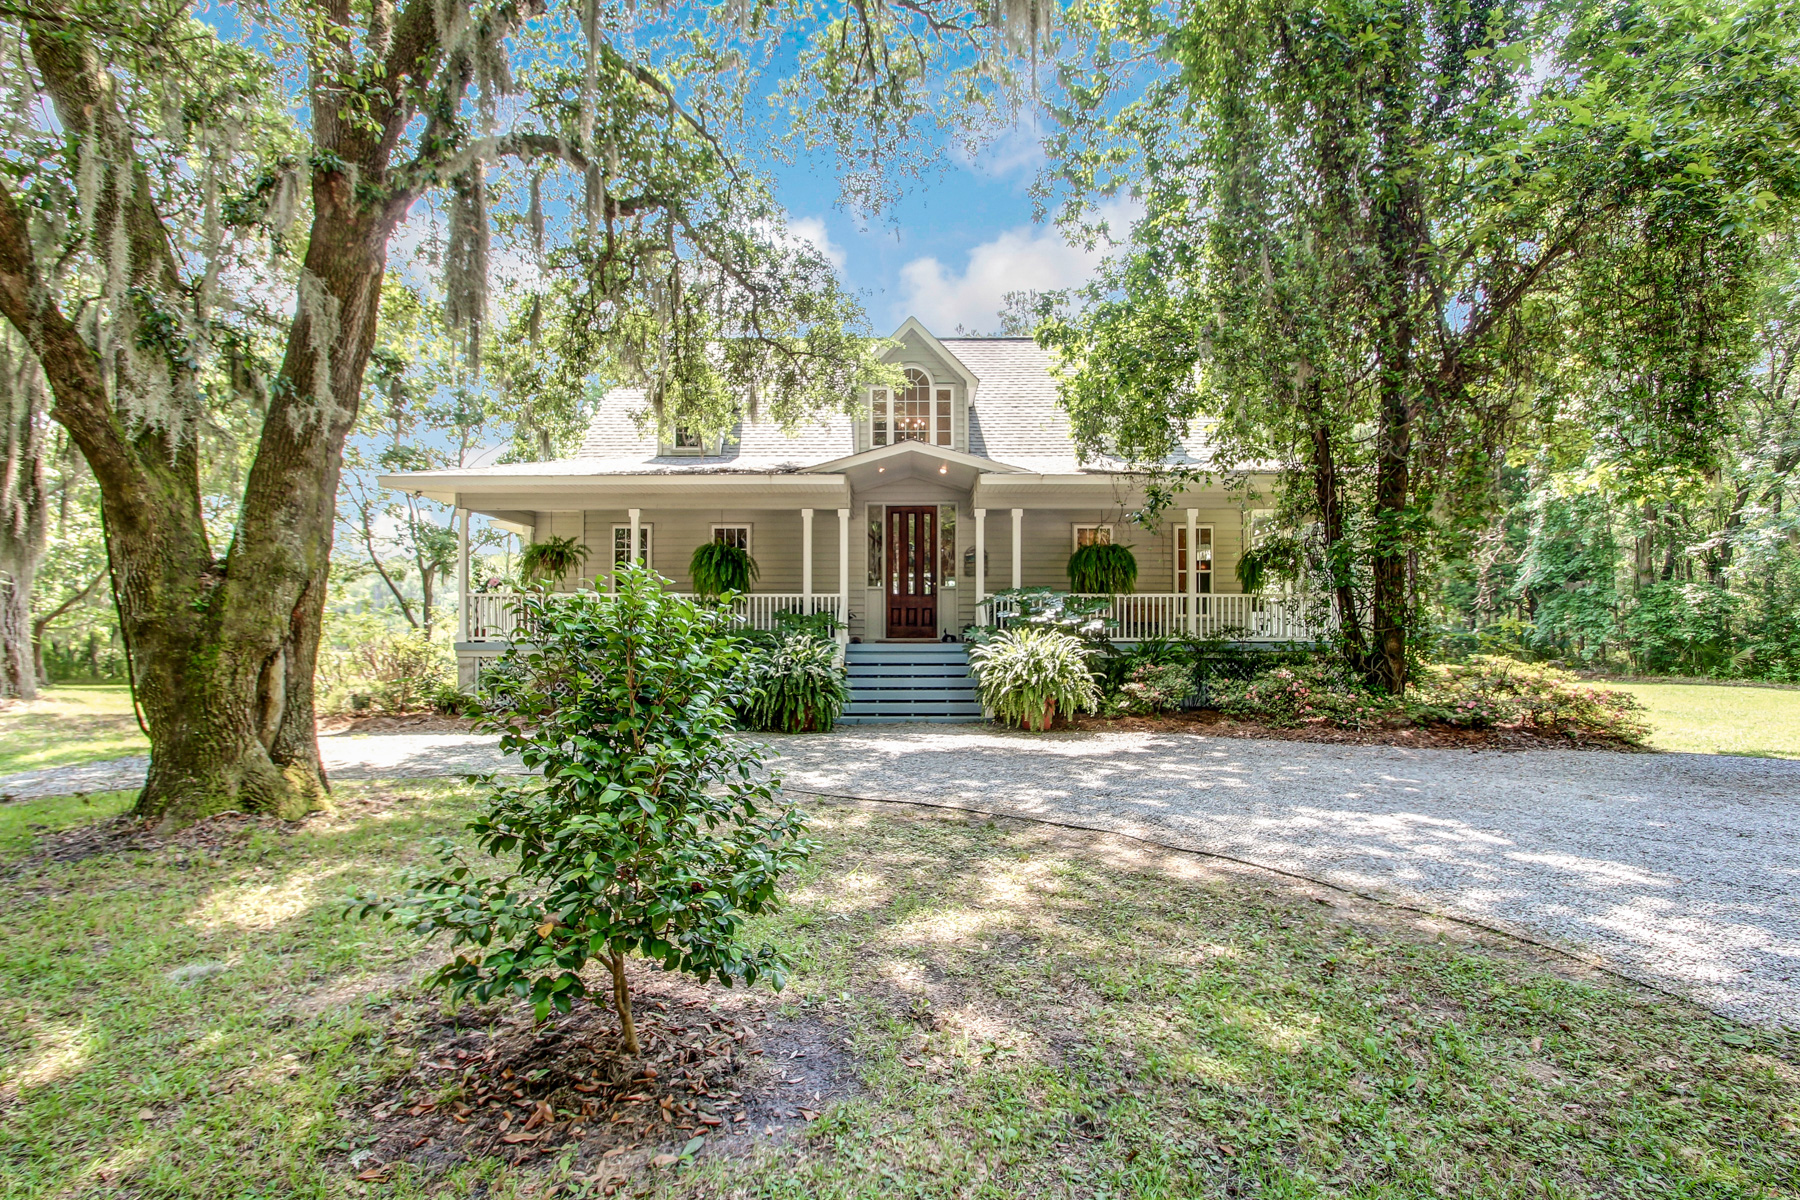 Single Family Home for Sale at Molly's Pond 4787 Bellinger Hill Hardeeville, South Carolina, 29927 United States